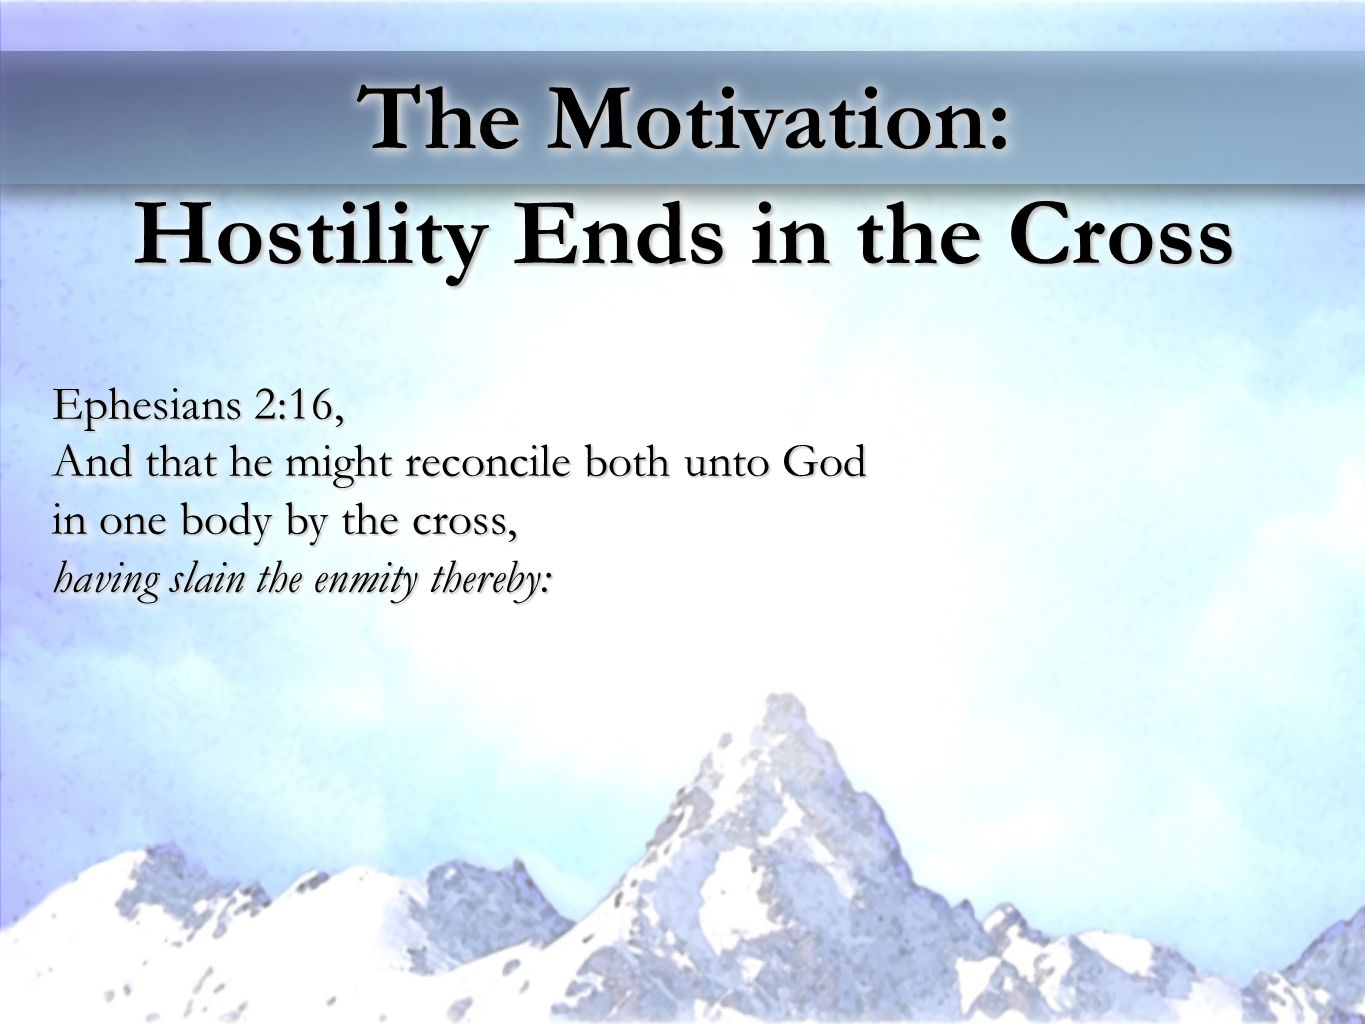 The Motivation: Hostility Ends in the Cross The Motivation: Hostility Ends in the Cross Ephesians 2:16, And that he might reconcile both unto God in one body by the cross, having slain the enmity thereby: Ephesians 2:16, And that he might reconcile both unto God in one body by the cross, having slain the enmity thereby: